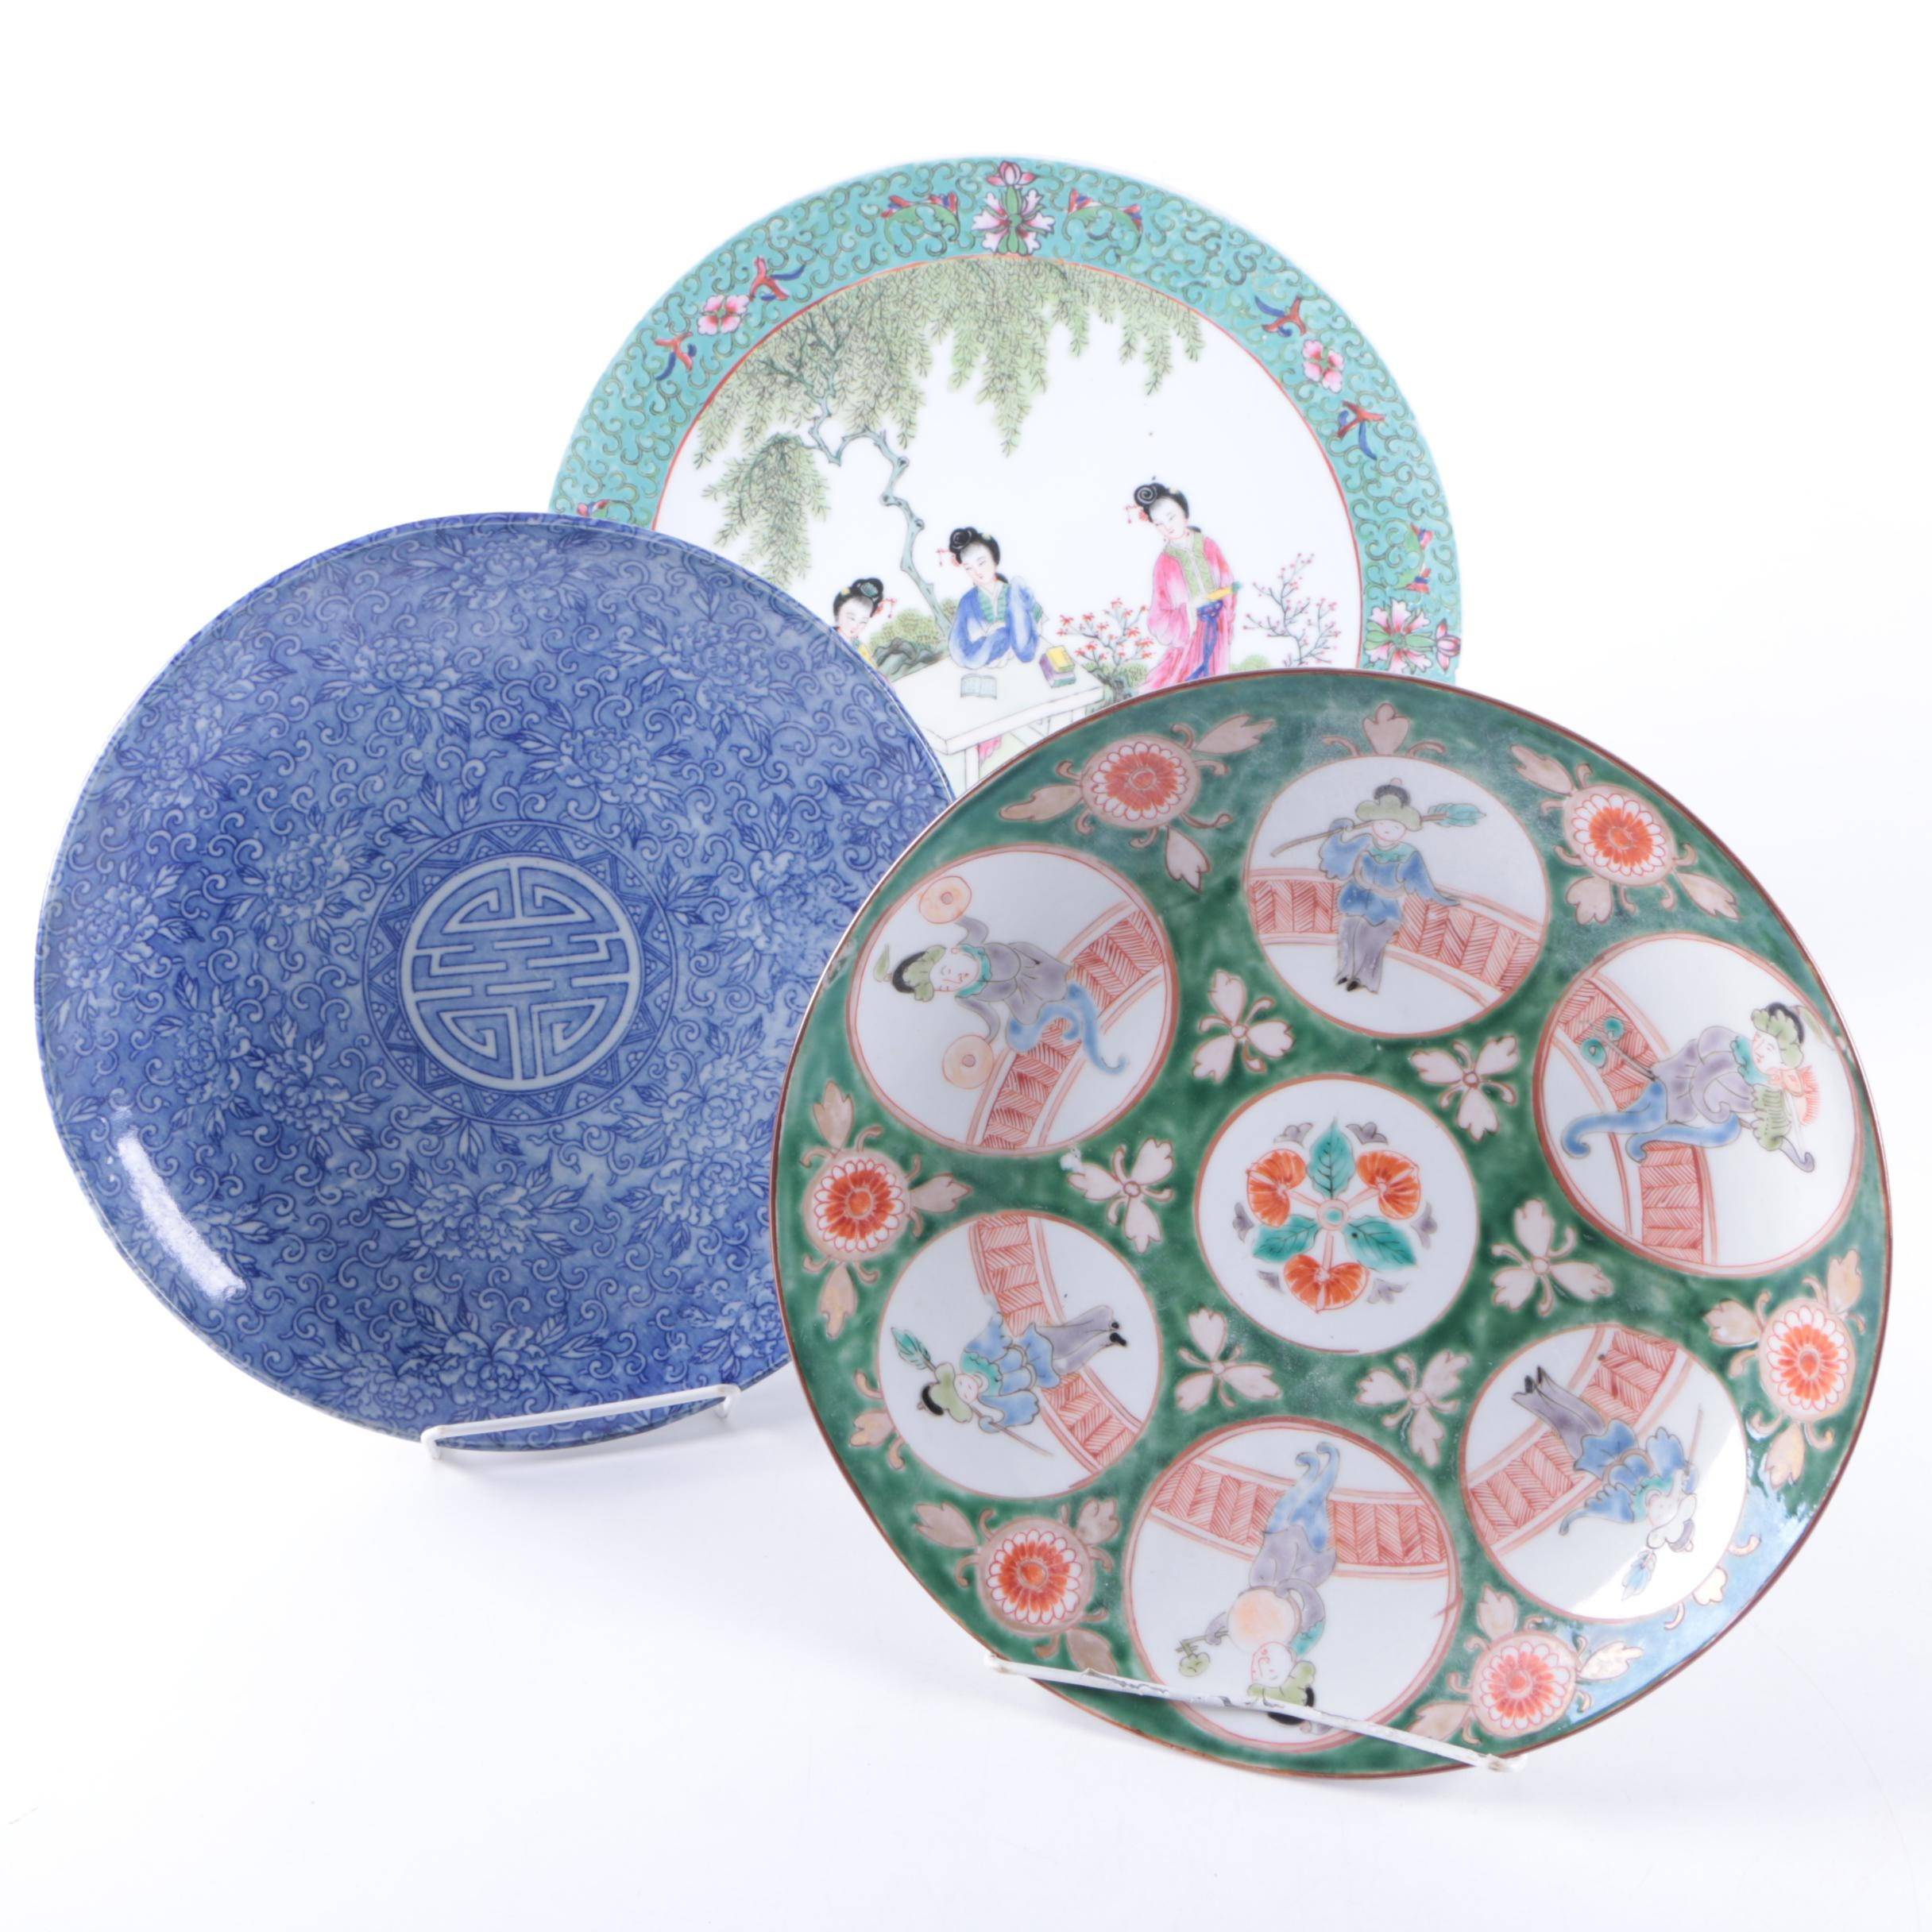 Decorative Chinese Porcelain Plates